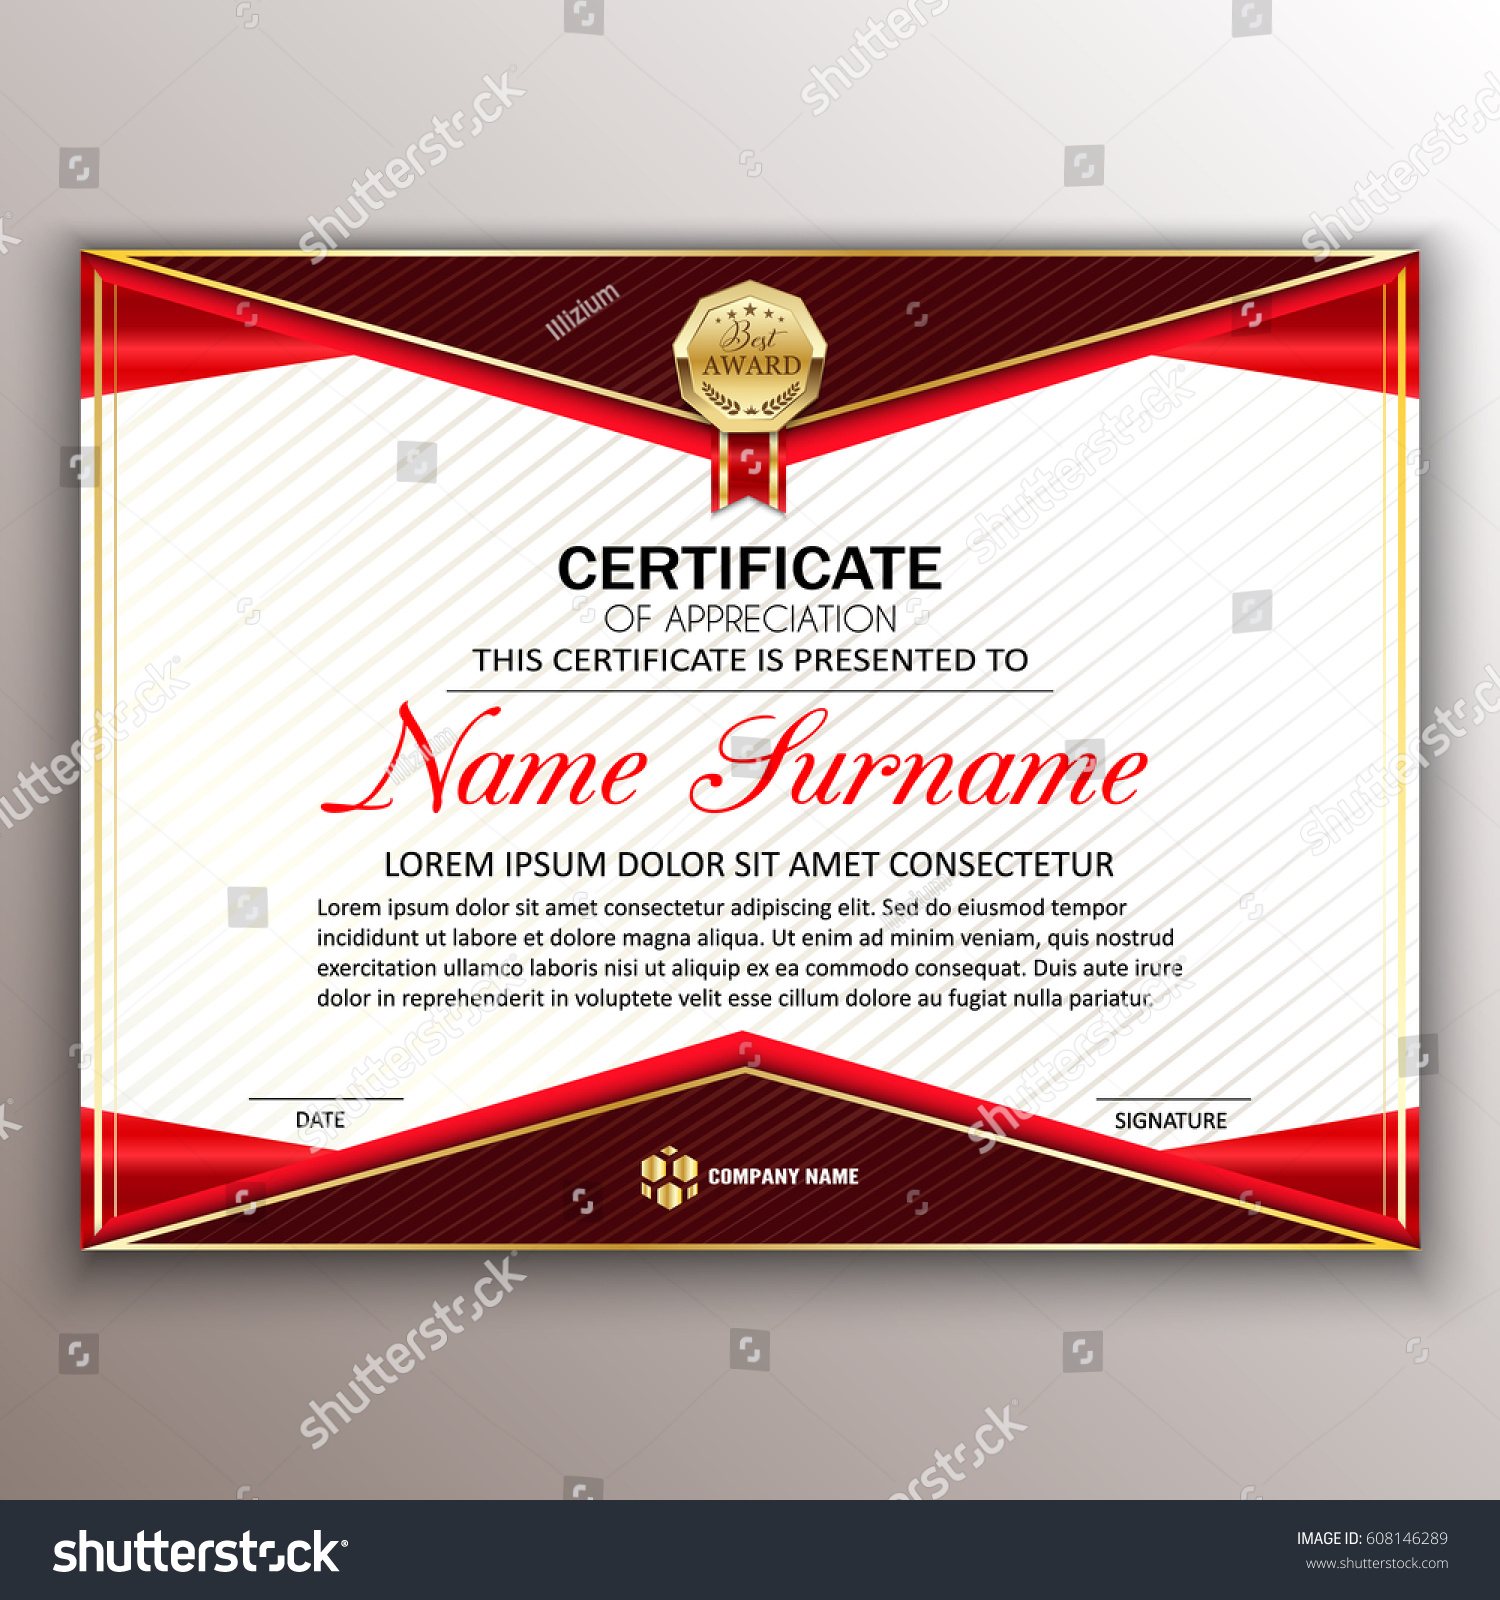 Beautiful Certificate Template Design Best Award Stock-Vektorgrafik ...